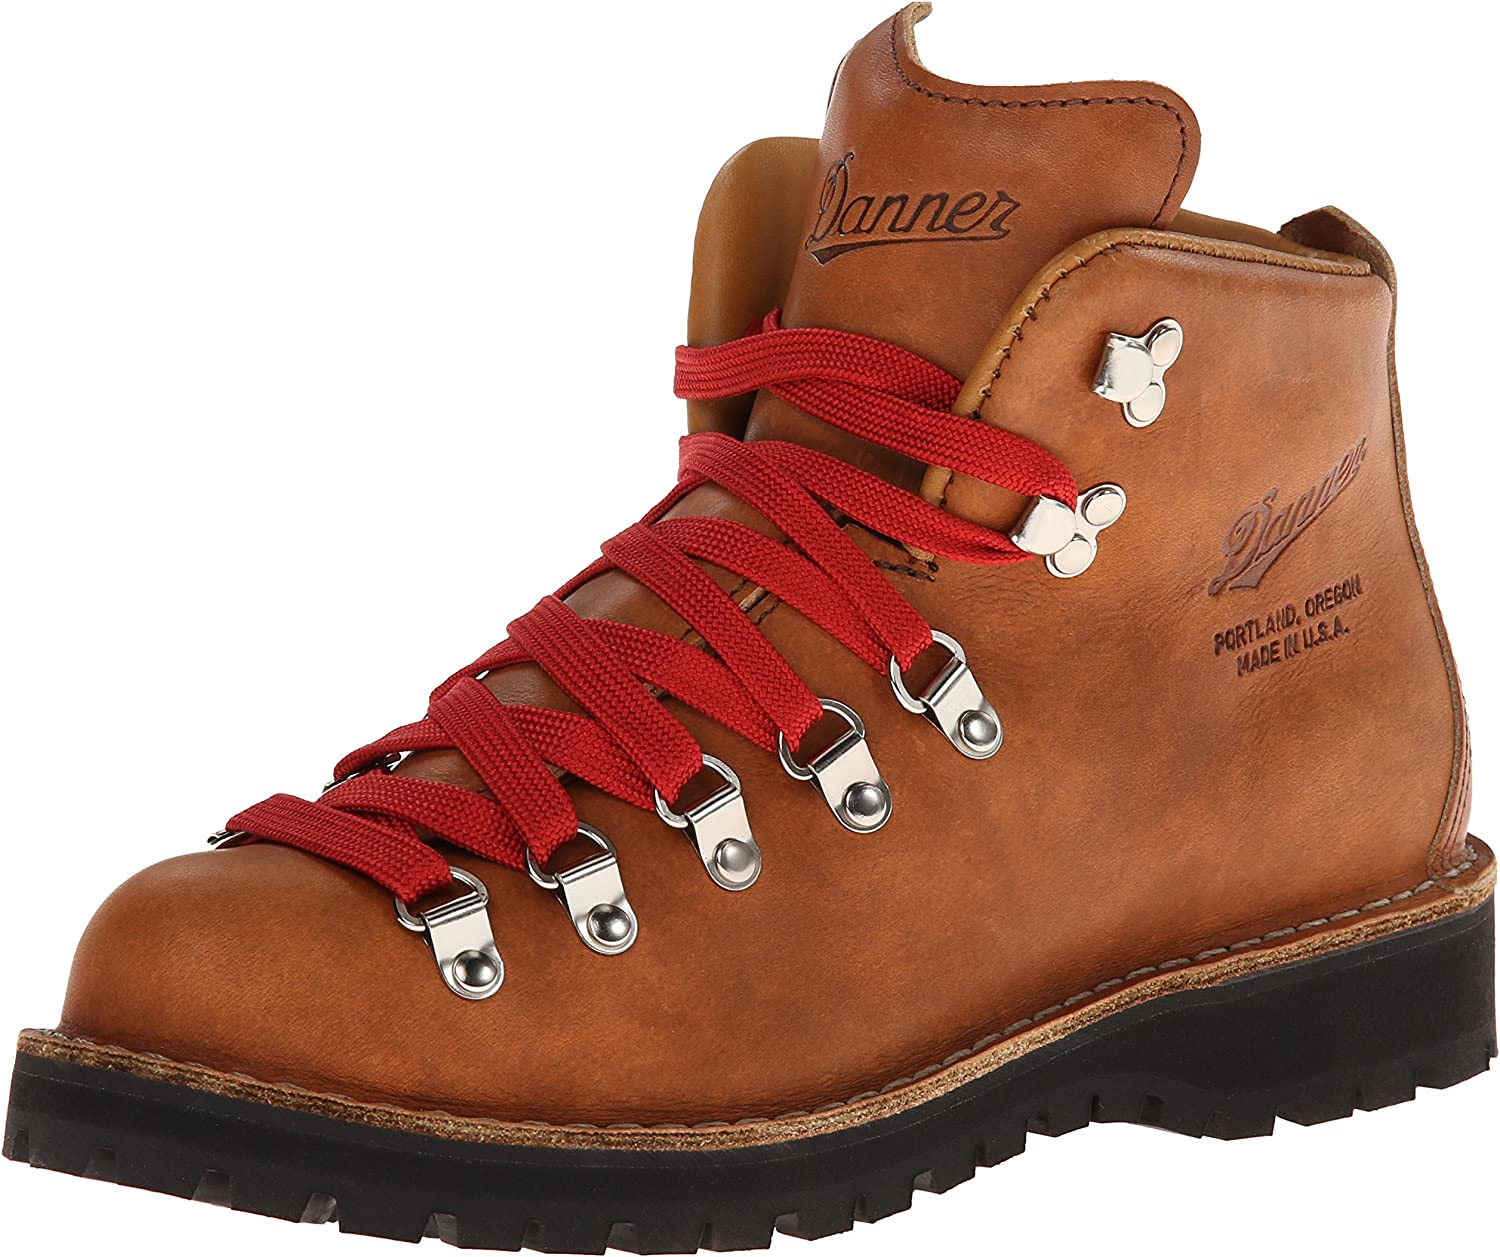 Where To Buy Danner Boots